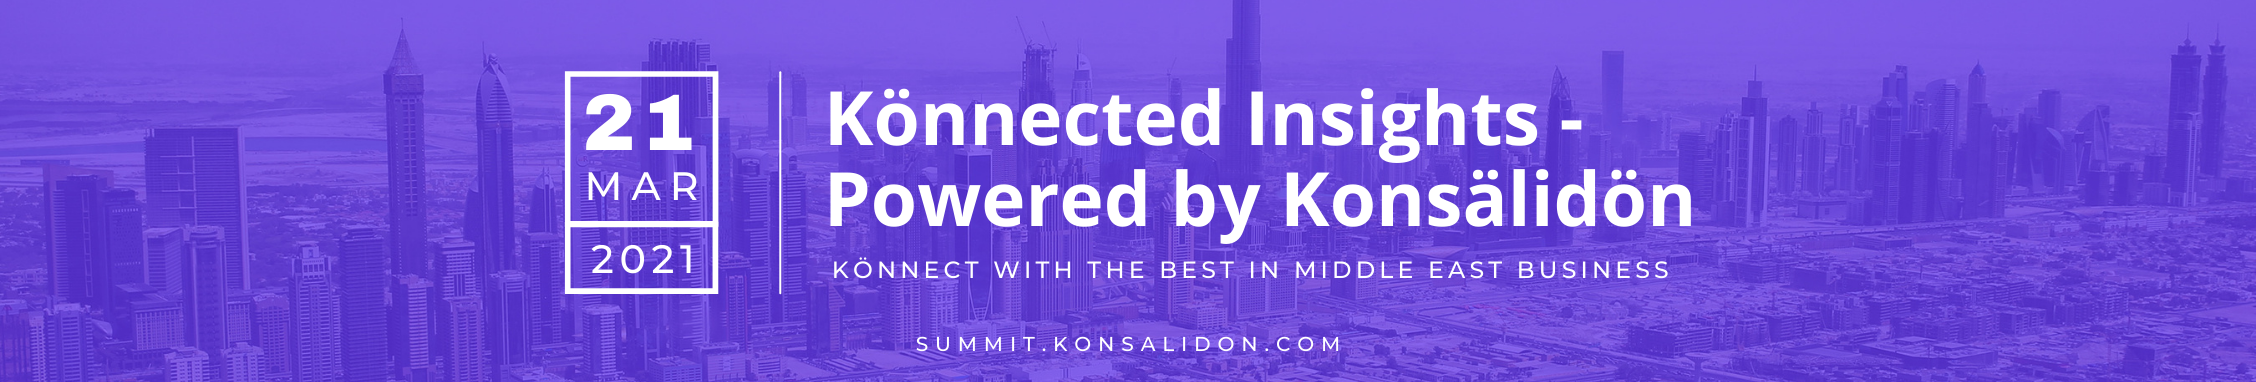 UAE based law firm Könnected Law (in partnership with Konsälidön) is delighted to bring to you the Könnected Insights Web Summit.